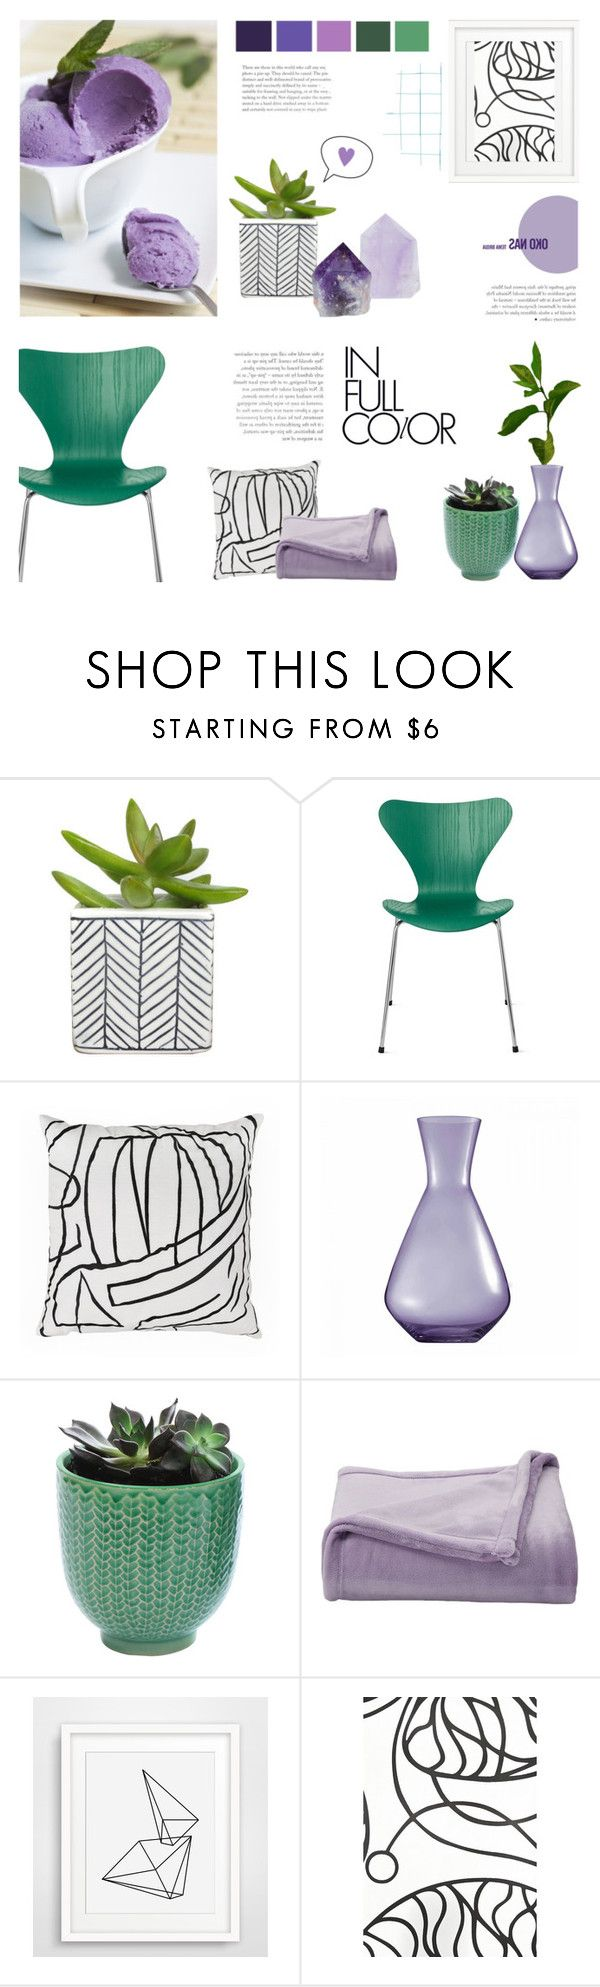 """""""#1 - In Full Color"""" by c-silla ❤ liked on Polyvore featuring interior, interiors, interior design, home, home decor, interior decorating, Kelly Wearstler, Wedgwood, Dot & Bo and The Big One"""